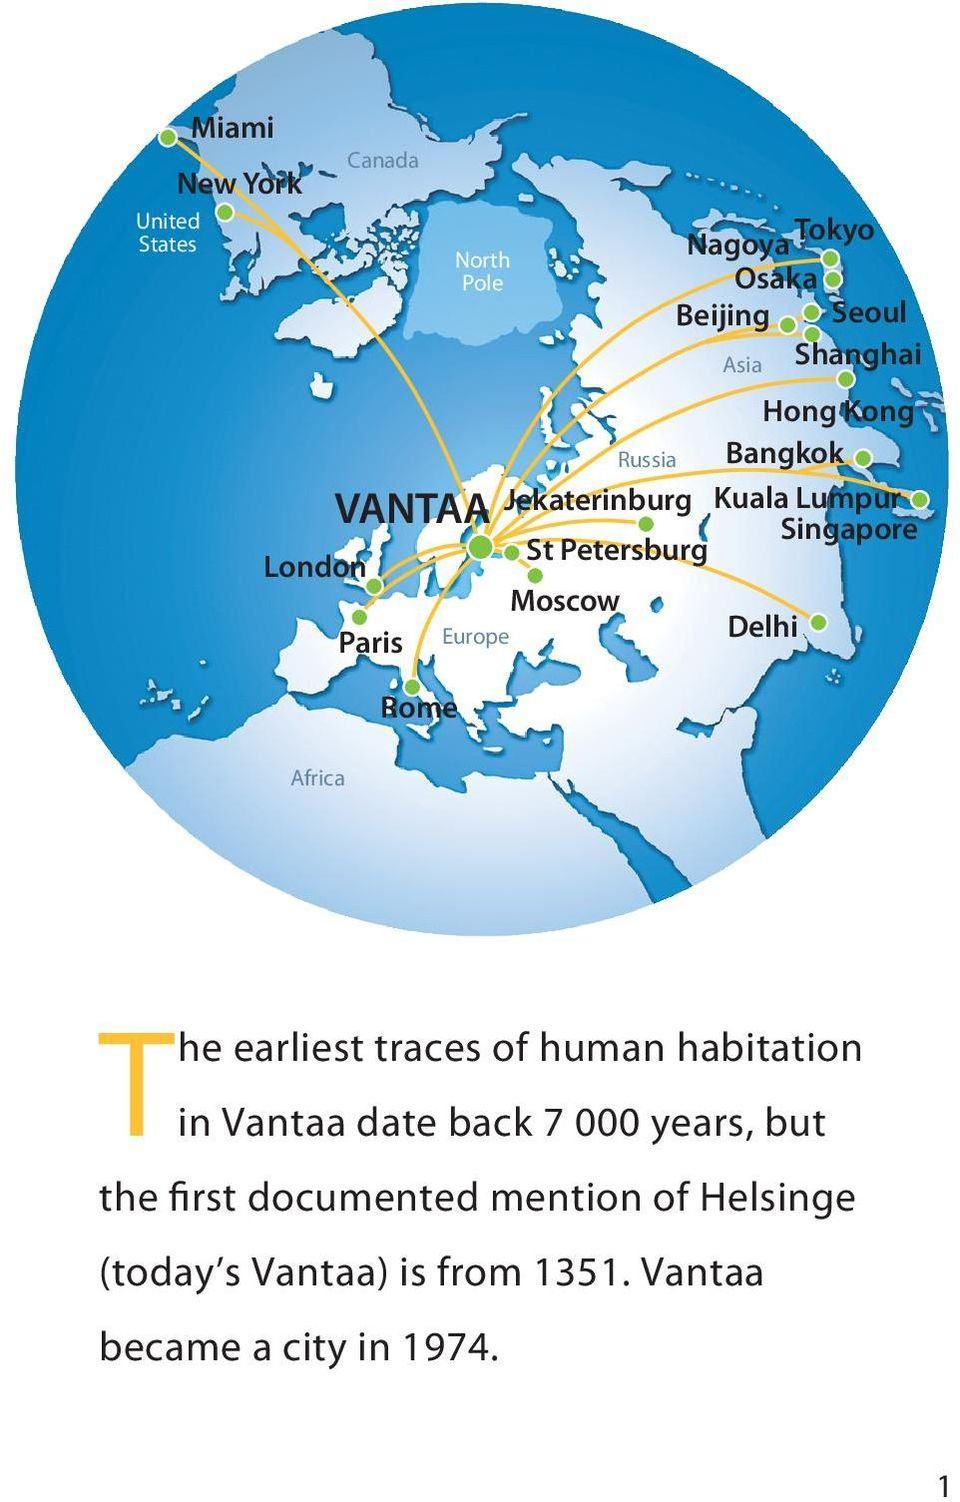 Moscow Europe Delhi Africa The earliest traces of human habitation in Vantaa date back 7 000 years,